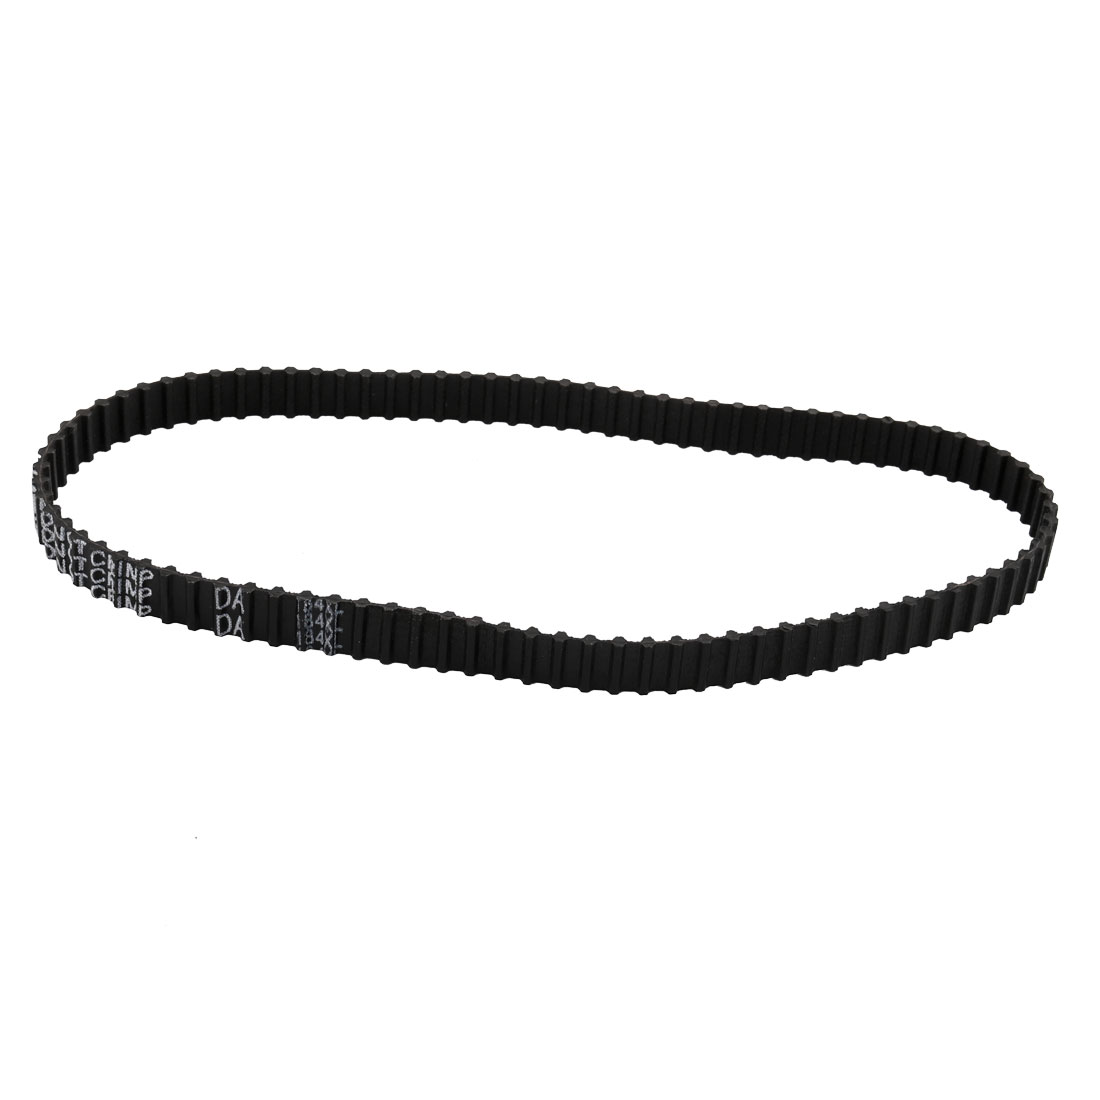 184DXL 92 Teeth 10mm Width 5.08mm Pitch Stepper Motor Rubber Timing Belt Black